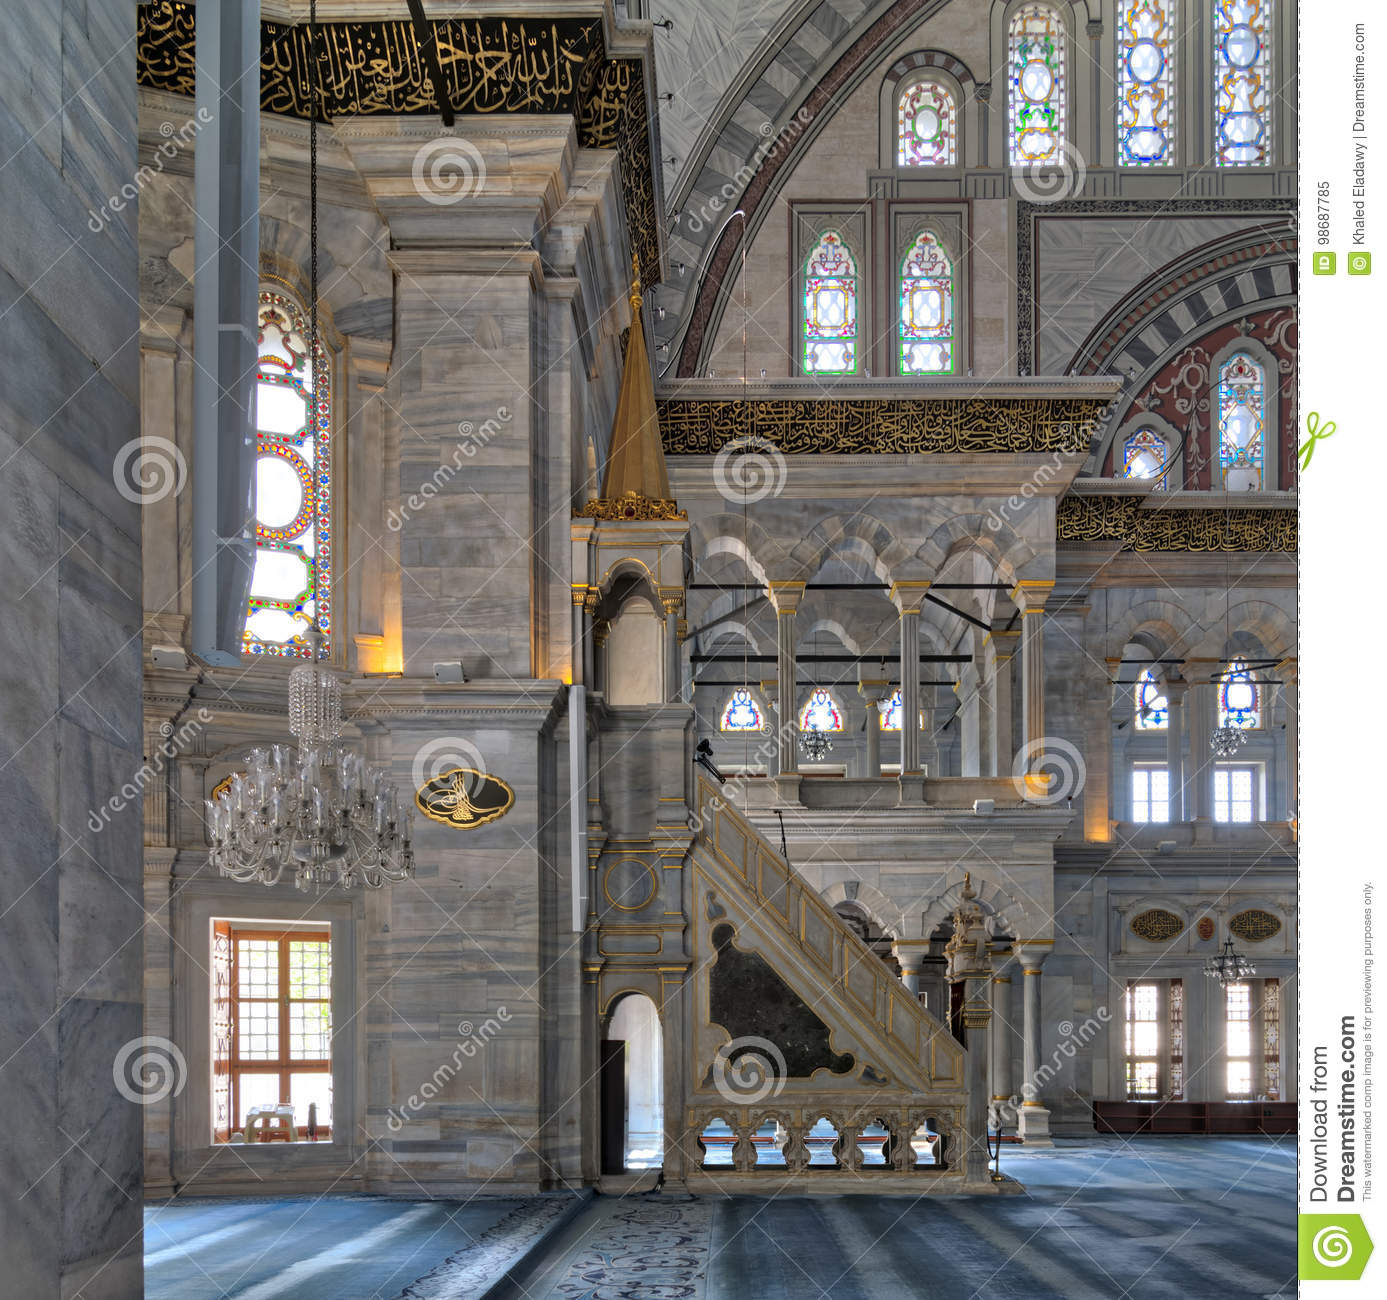 Interior shot of Nuruosmaniye Mosque with minbar platform, arches & colored stained glass windows, Istanbul, Turkey